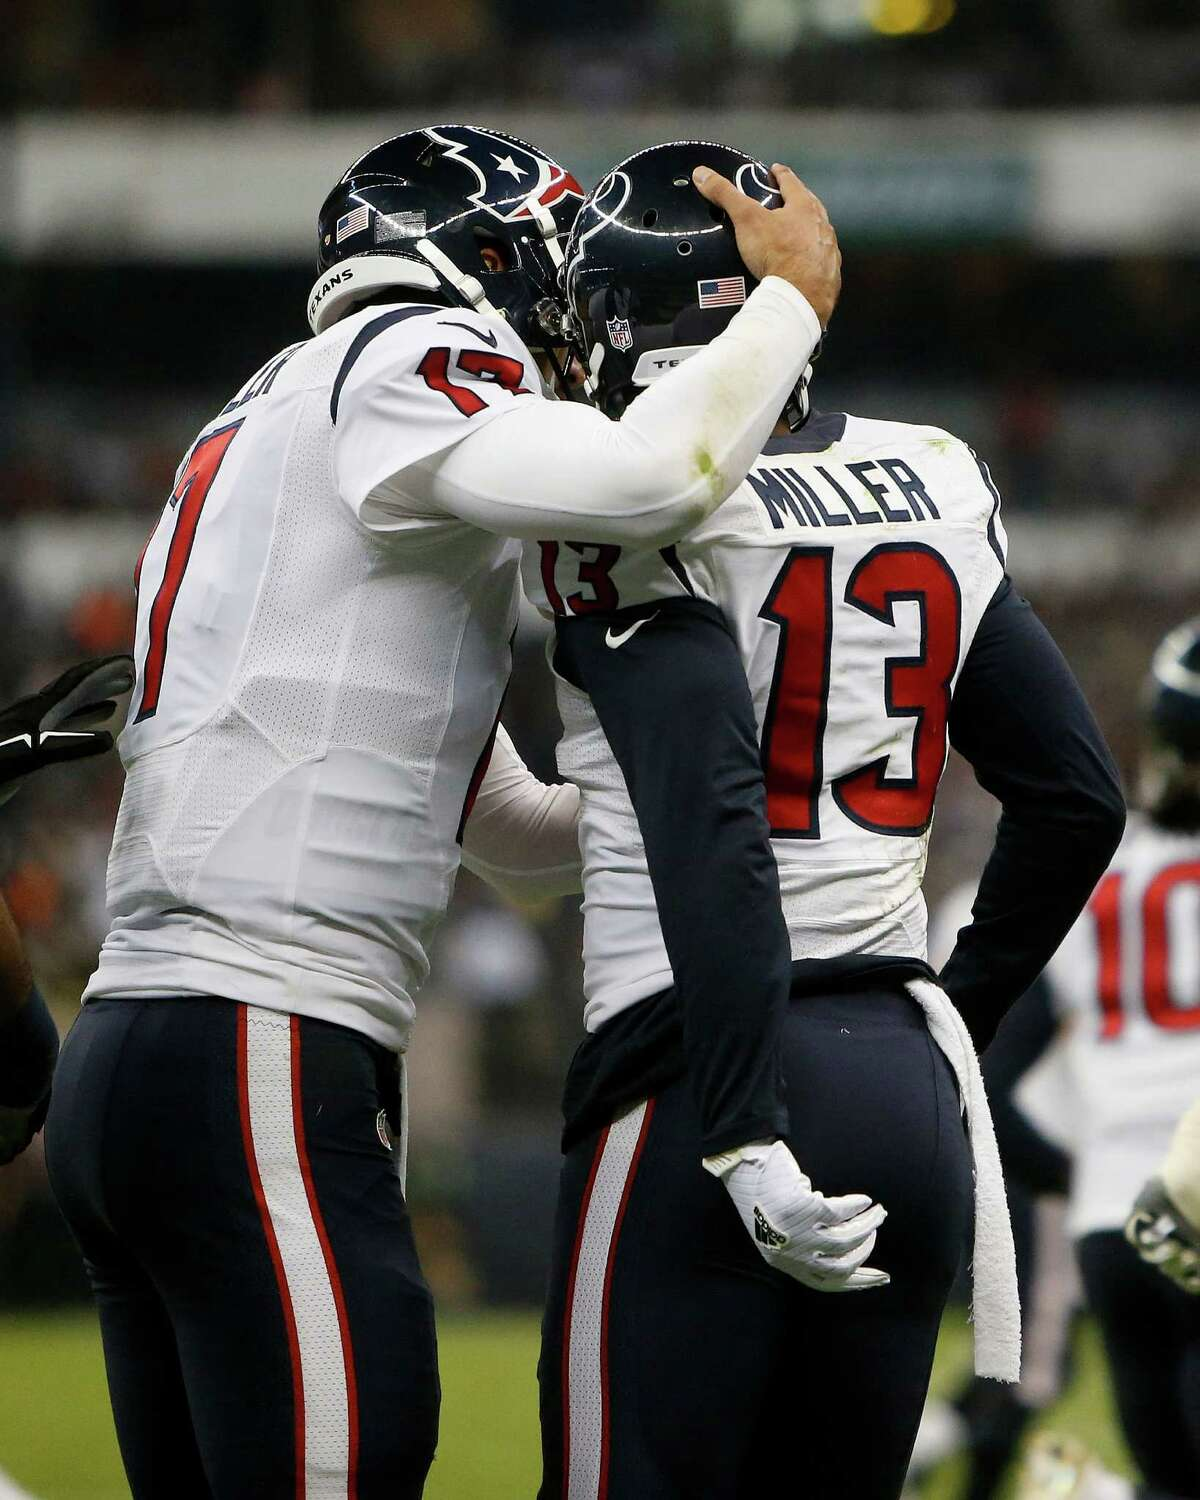 Houston Texans wide receiver Braxton Miller (13) celebrates his touchdown with quarterback Brock Osweiler (17) during the second quarter of an NFL football game at Estadio Azteca on Monday, Nov. 21, 2016, in Mexico City.